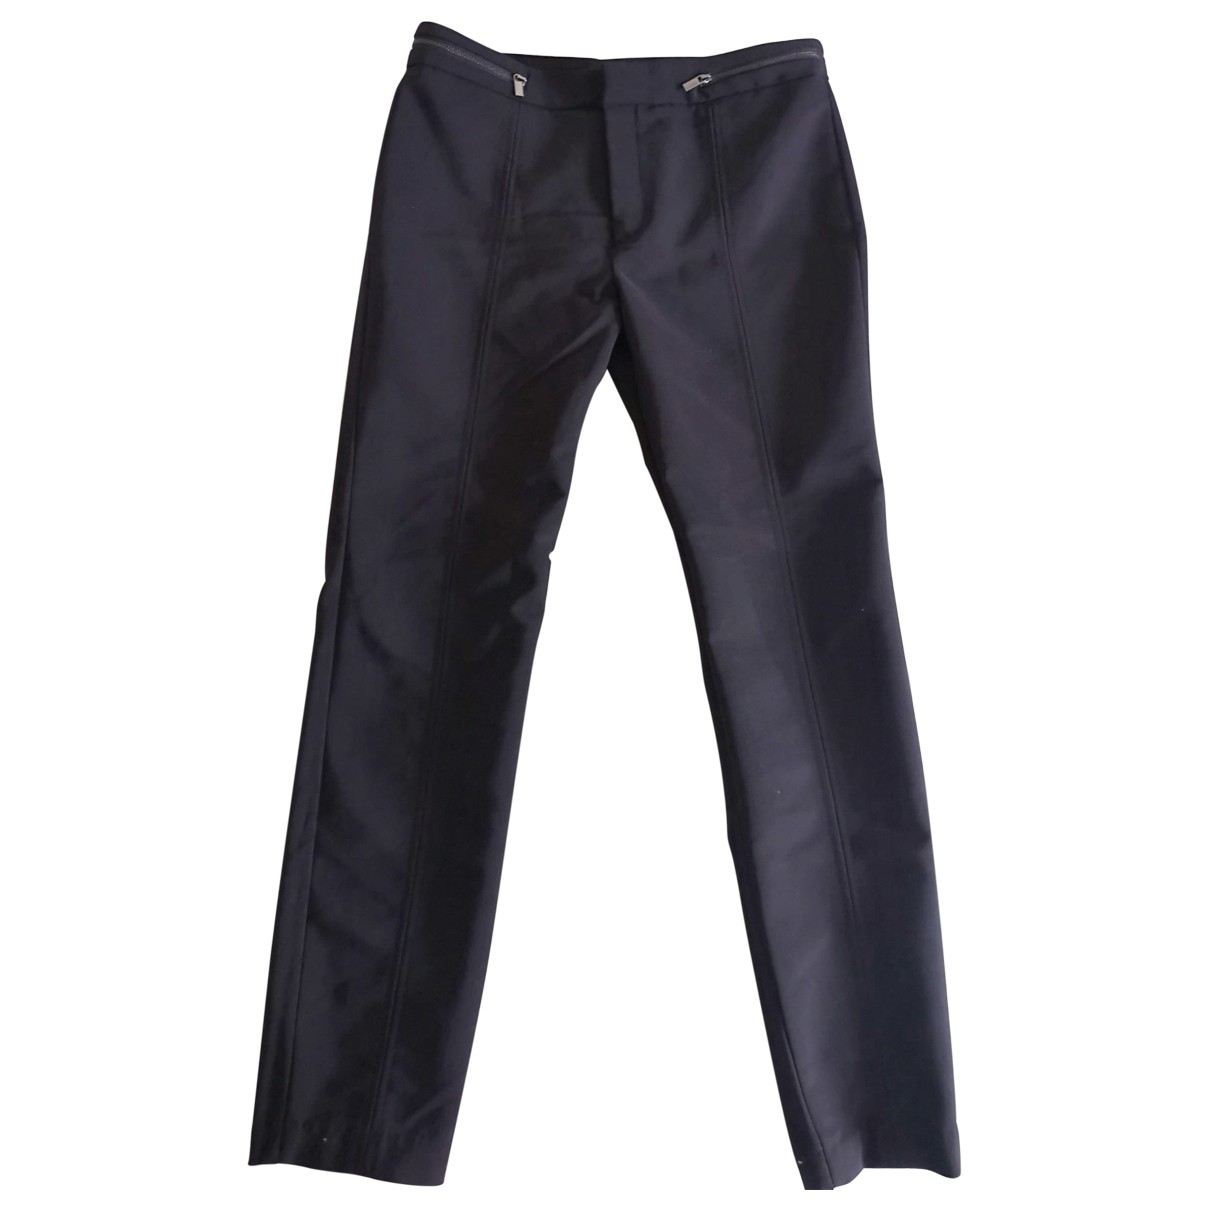 Mango \N Black Cotton Trousers for Women 38 FR